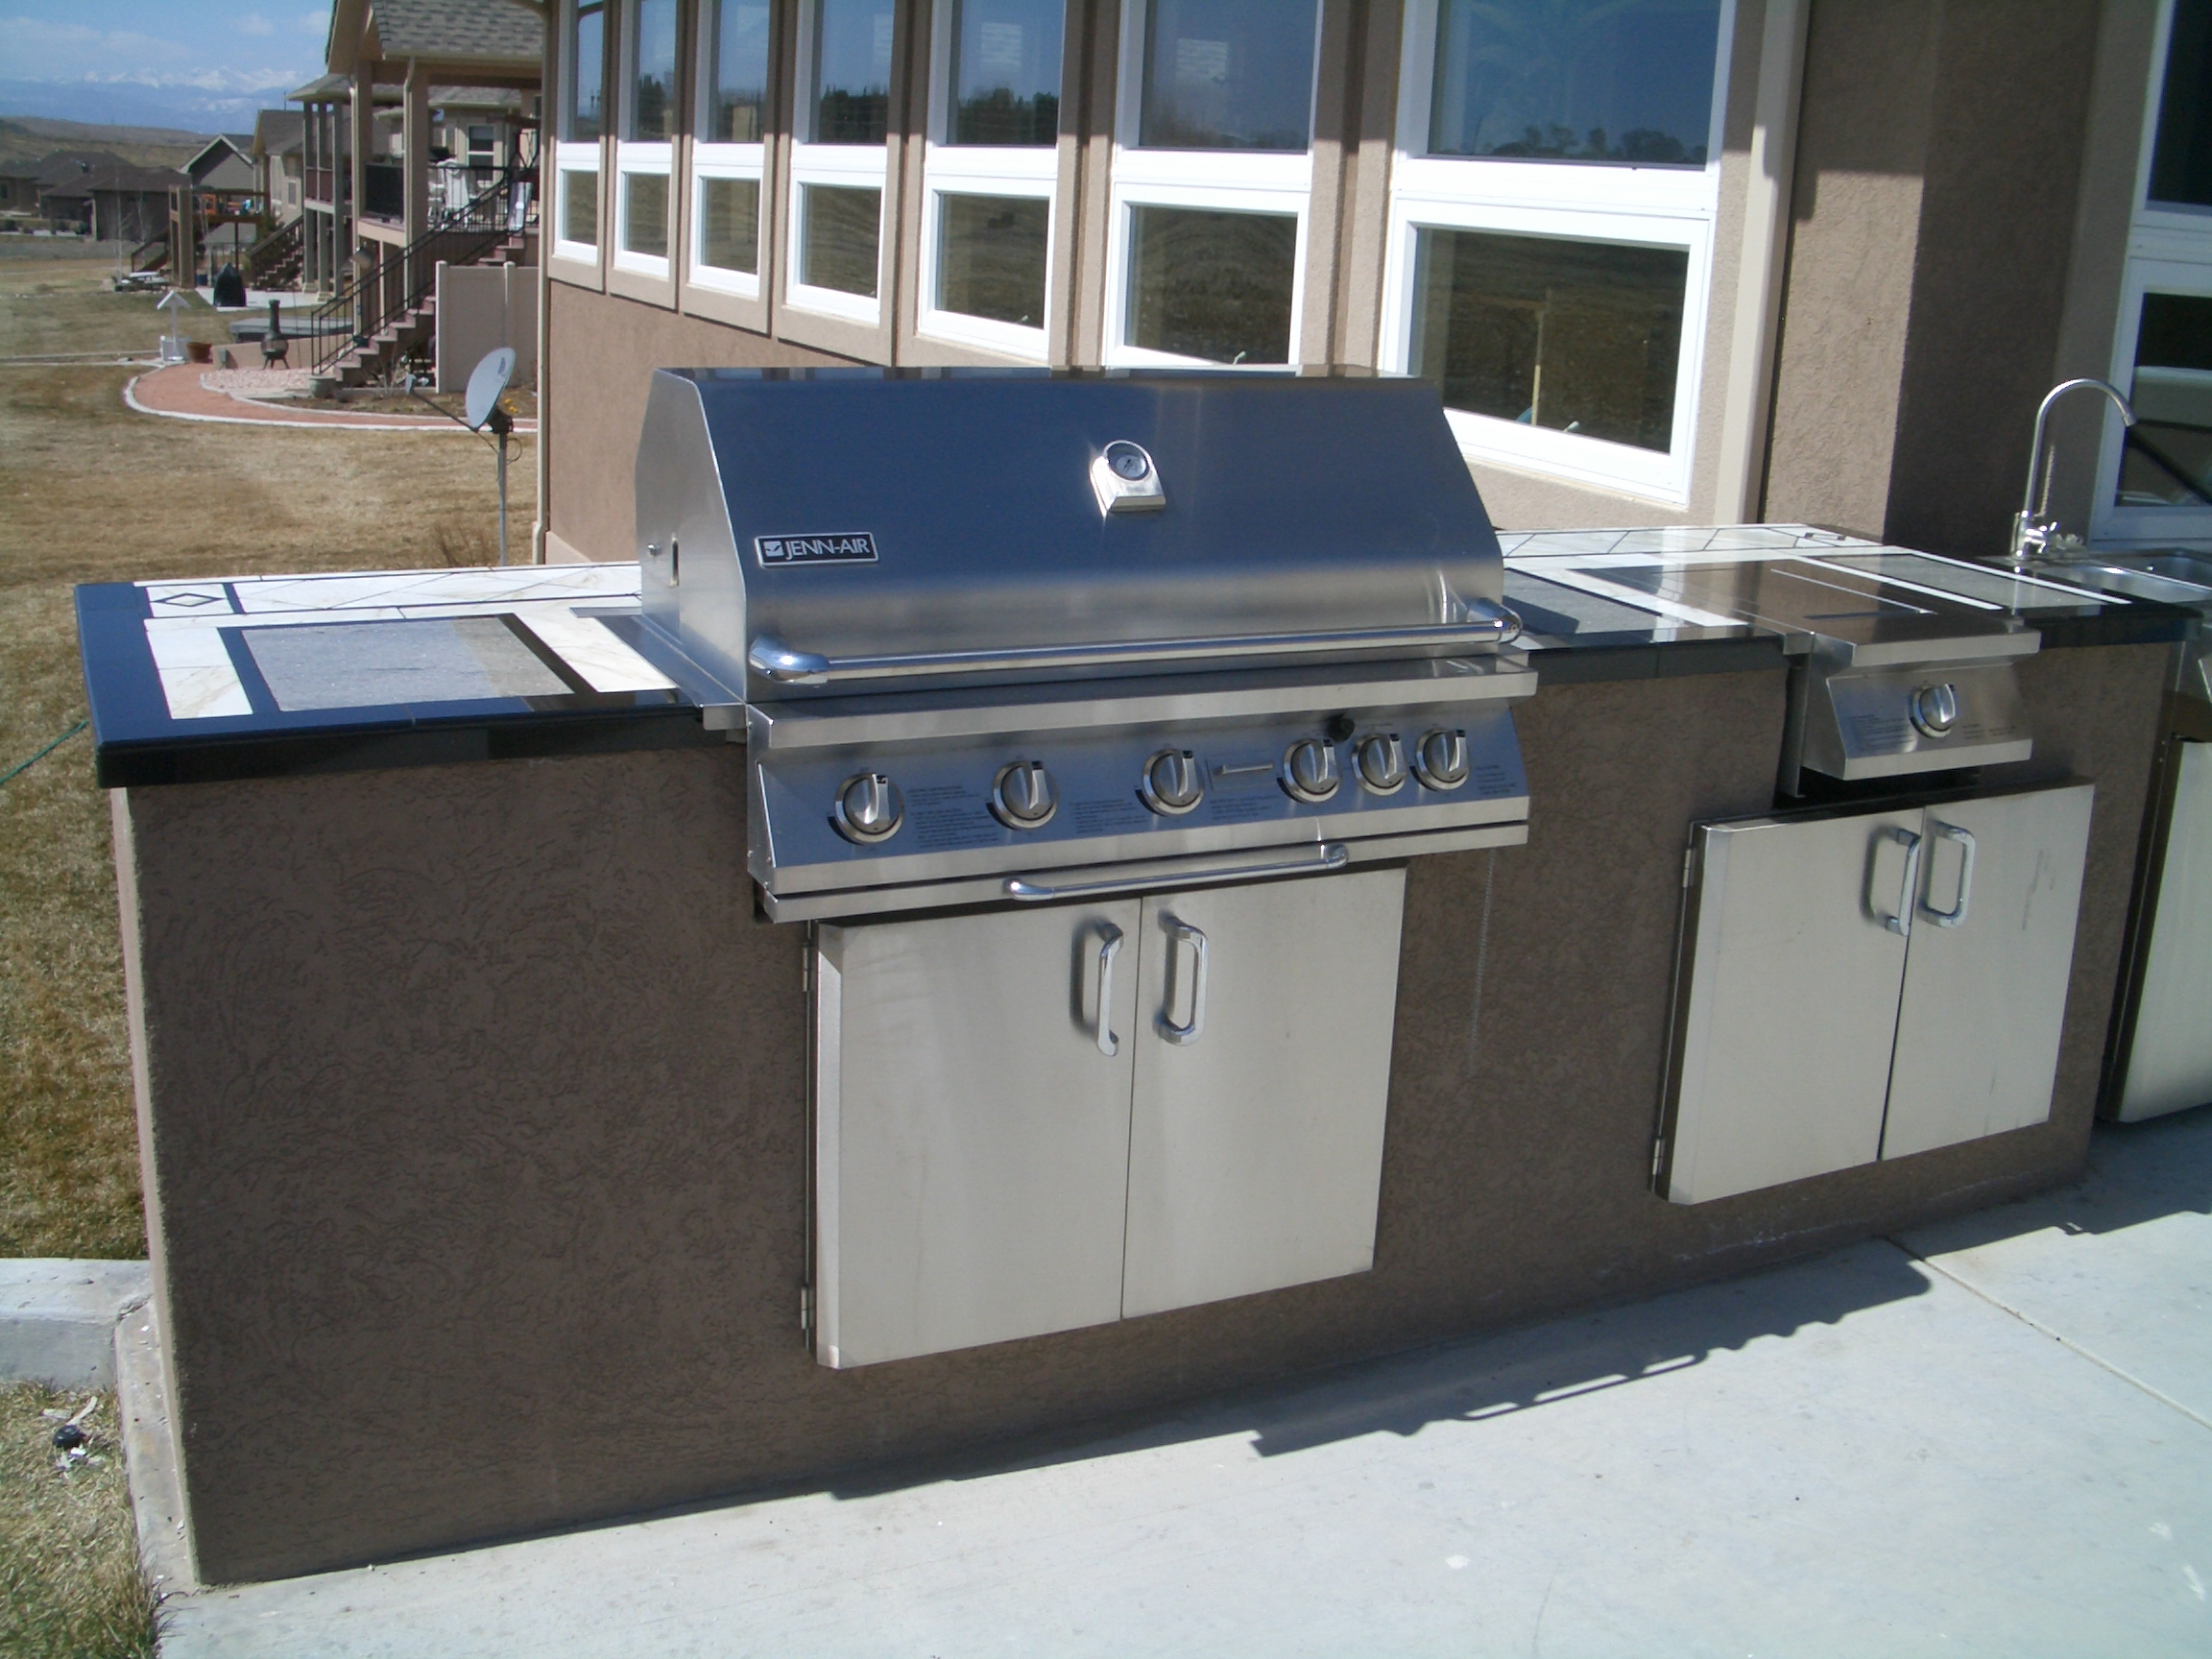 Outdoor Kitchens And Barbecue Islands In Fort Collins Tile Art Center